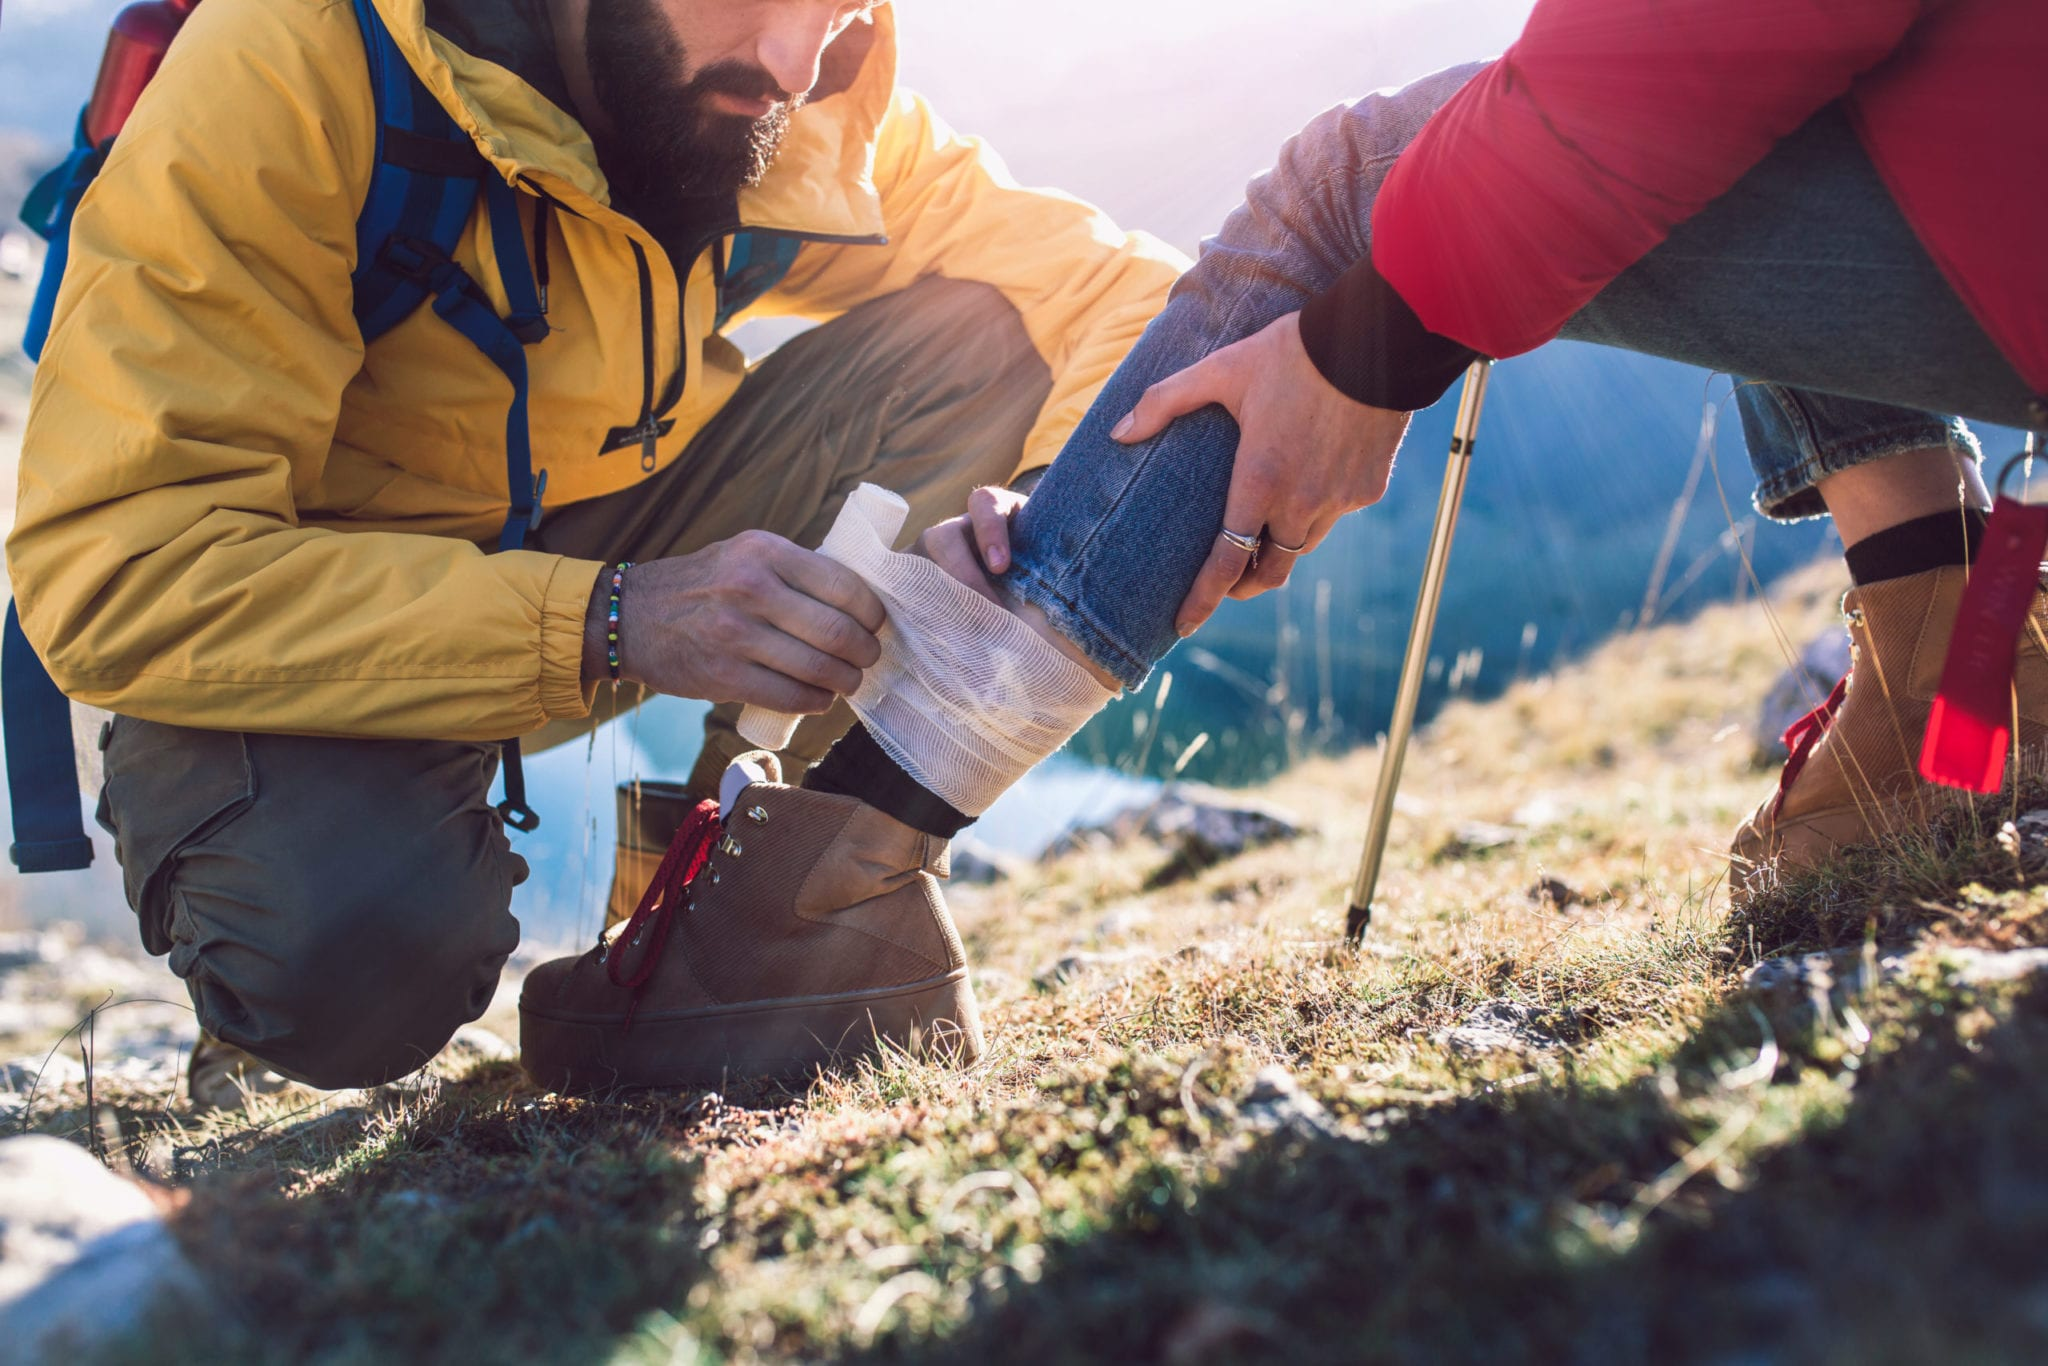 hiking essentials - hikers doing first aid